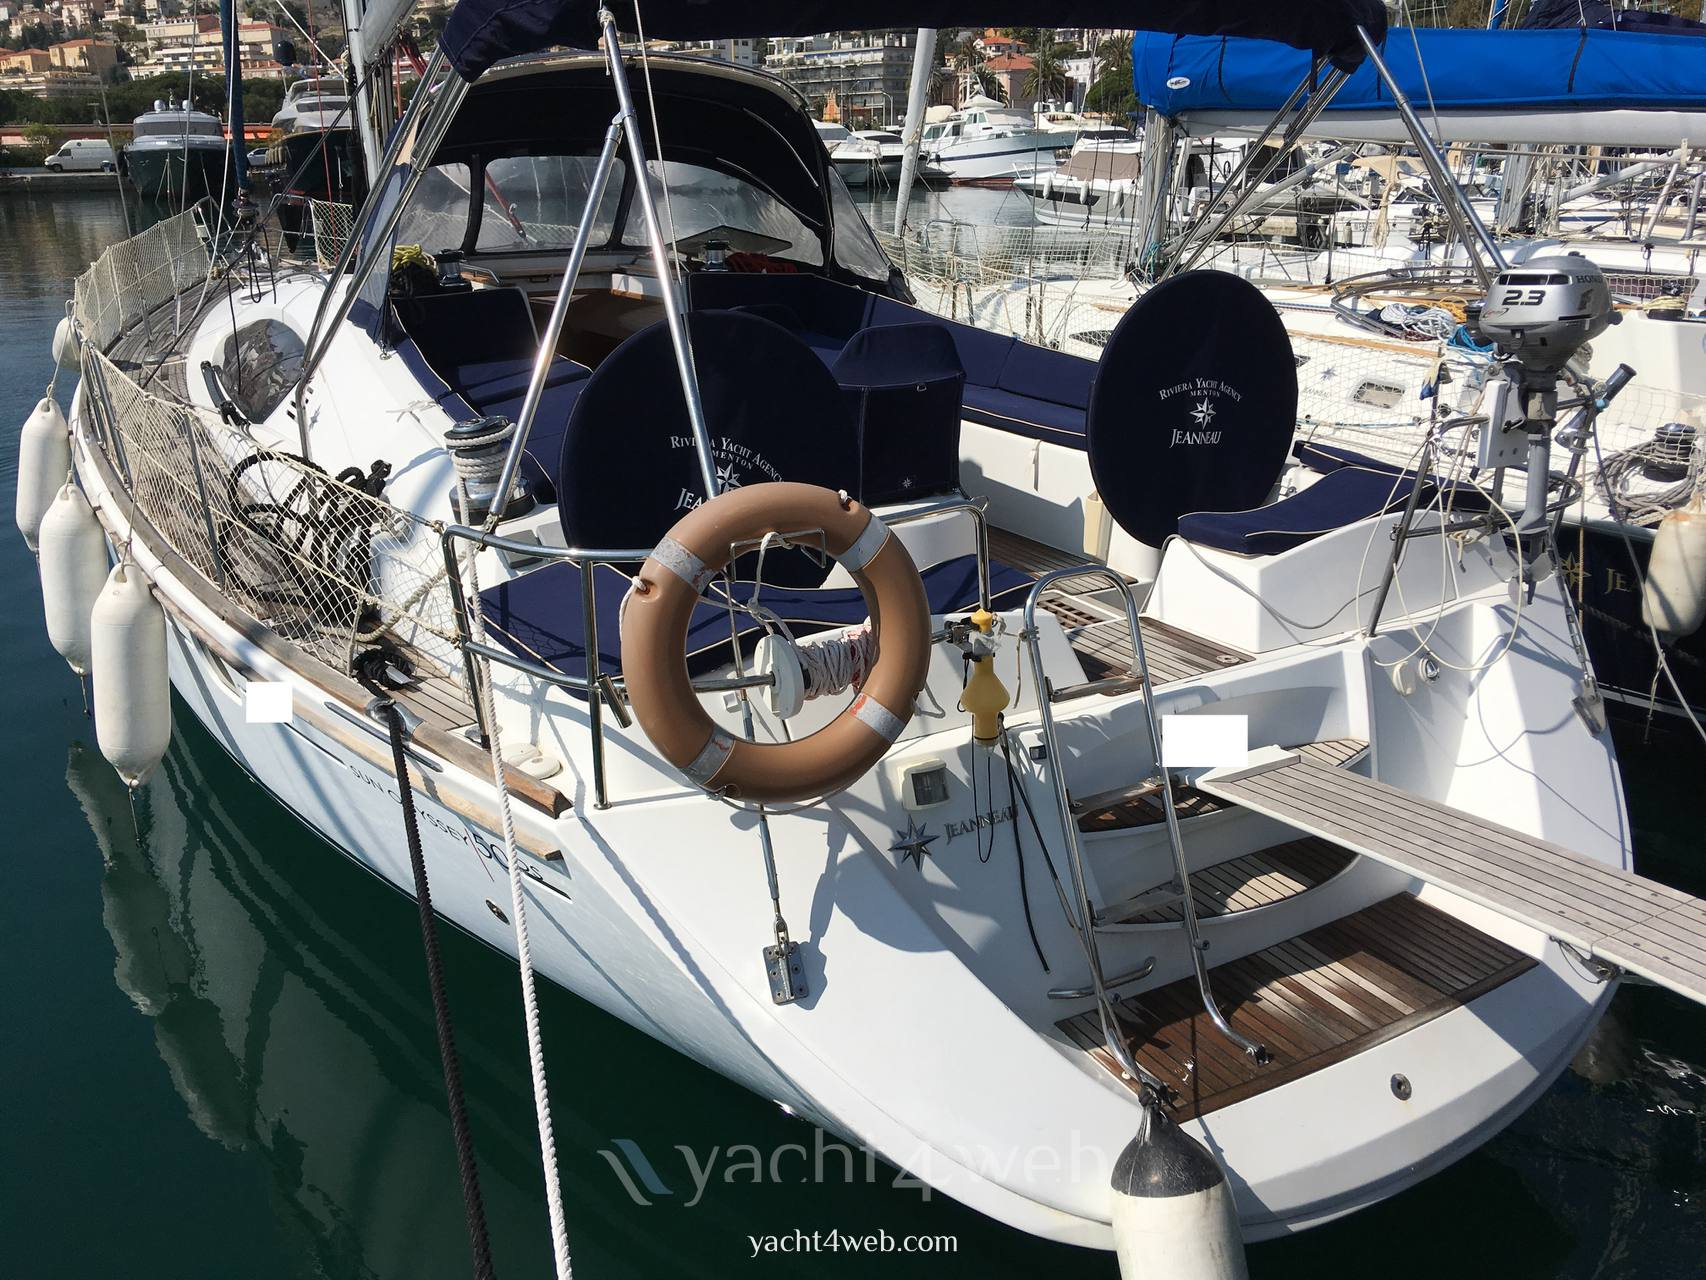 Jeanneau Sun odyssey 50 ds Sailing boat used for sale